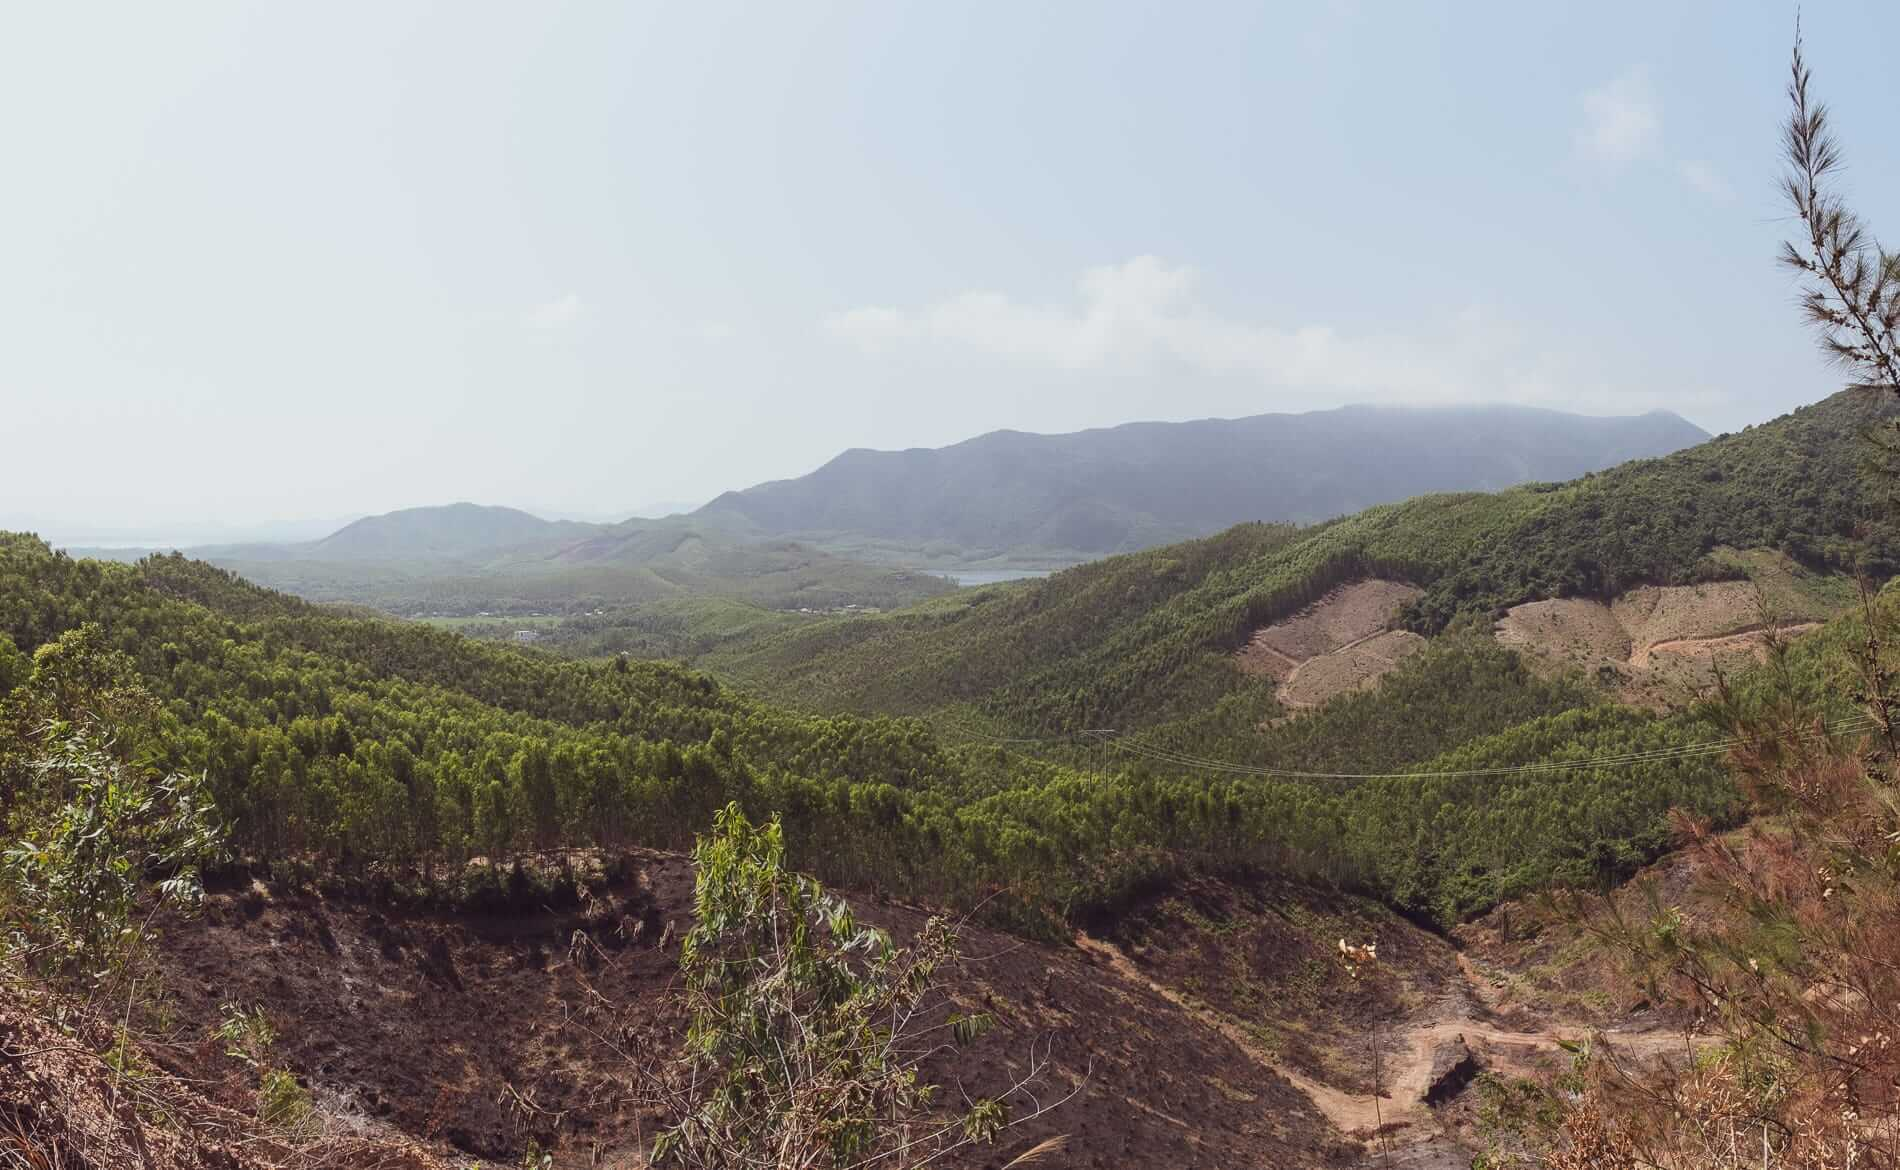 View from road DT639 - Hoi An to Quy Nhon